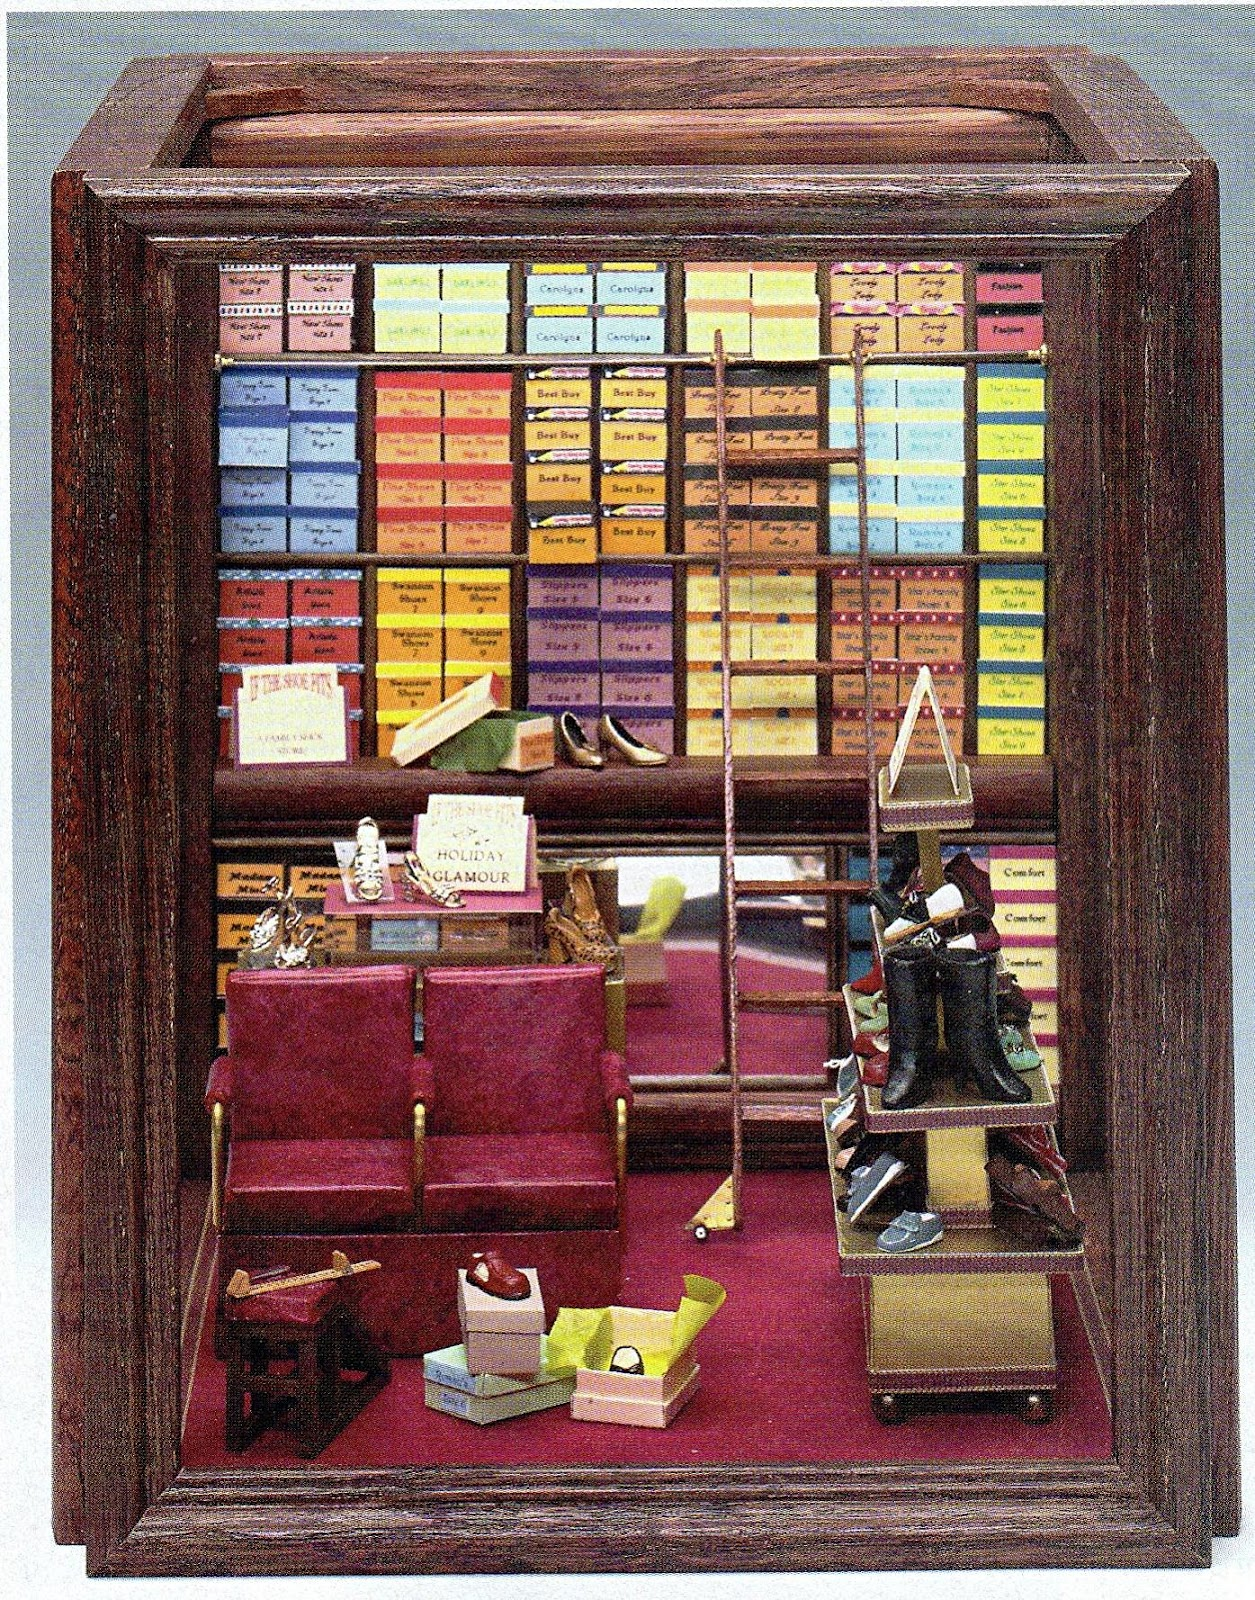 DYI DOLLHOUSE MINIATURES: MAKING ROOMS & DISPLAY BOXES FROM PICTURE ...